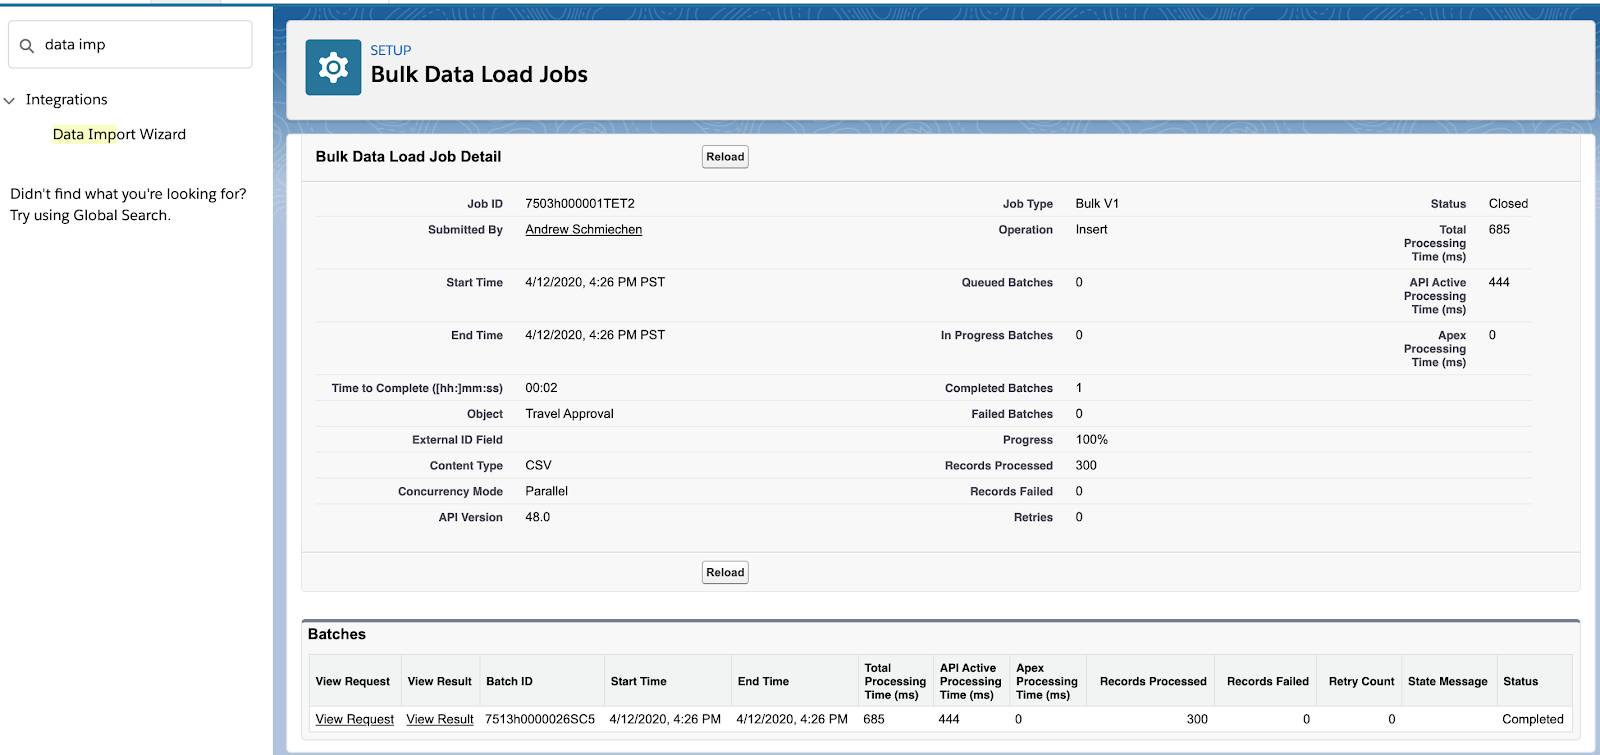 Bulk Data Load Jobs page